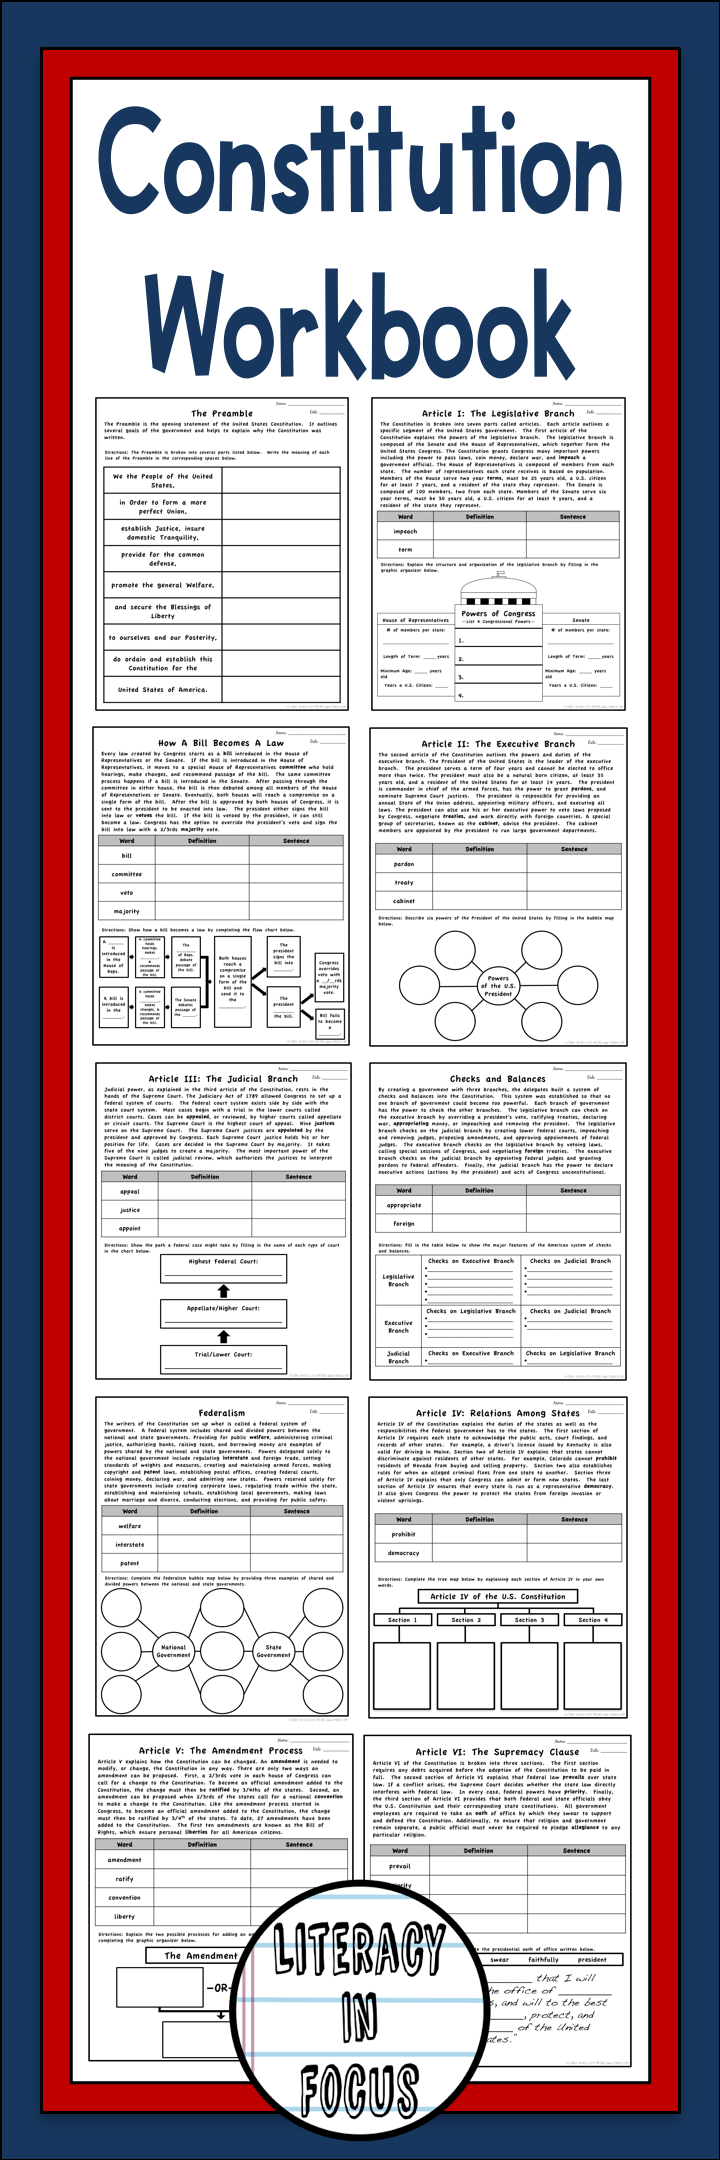 Constitution Worksheets - Constitution Workbook | 8th Grade